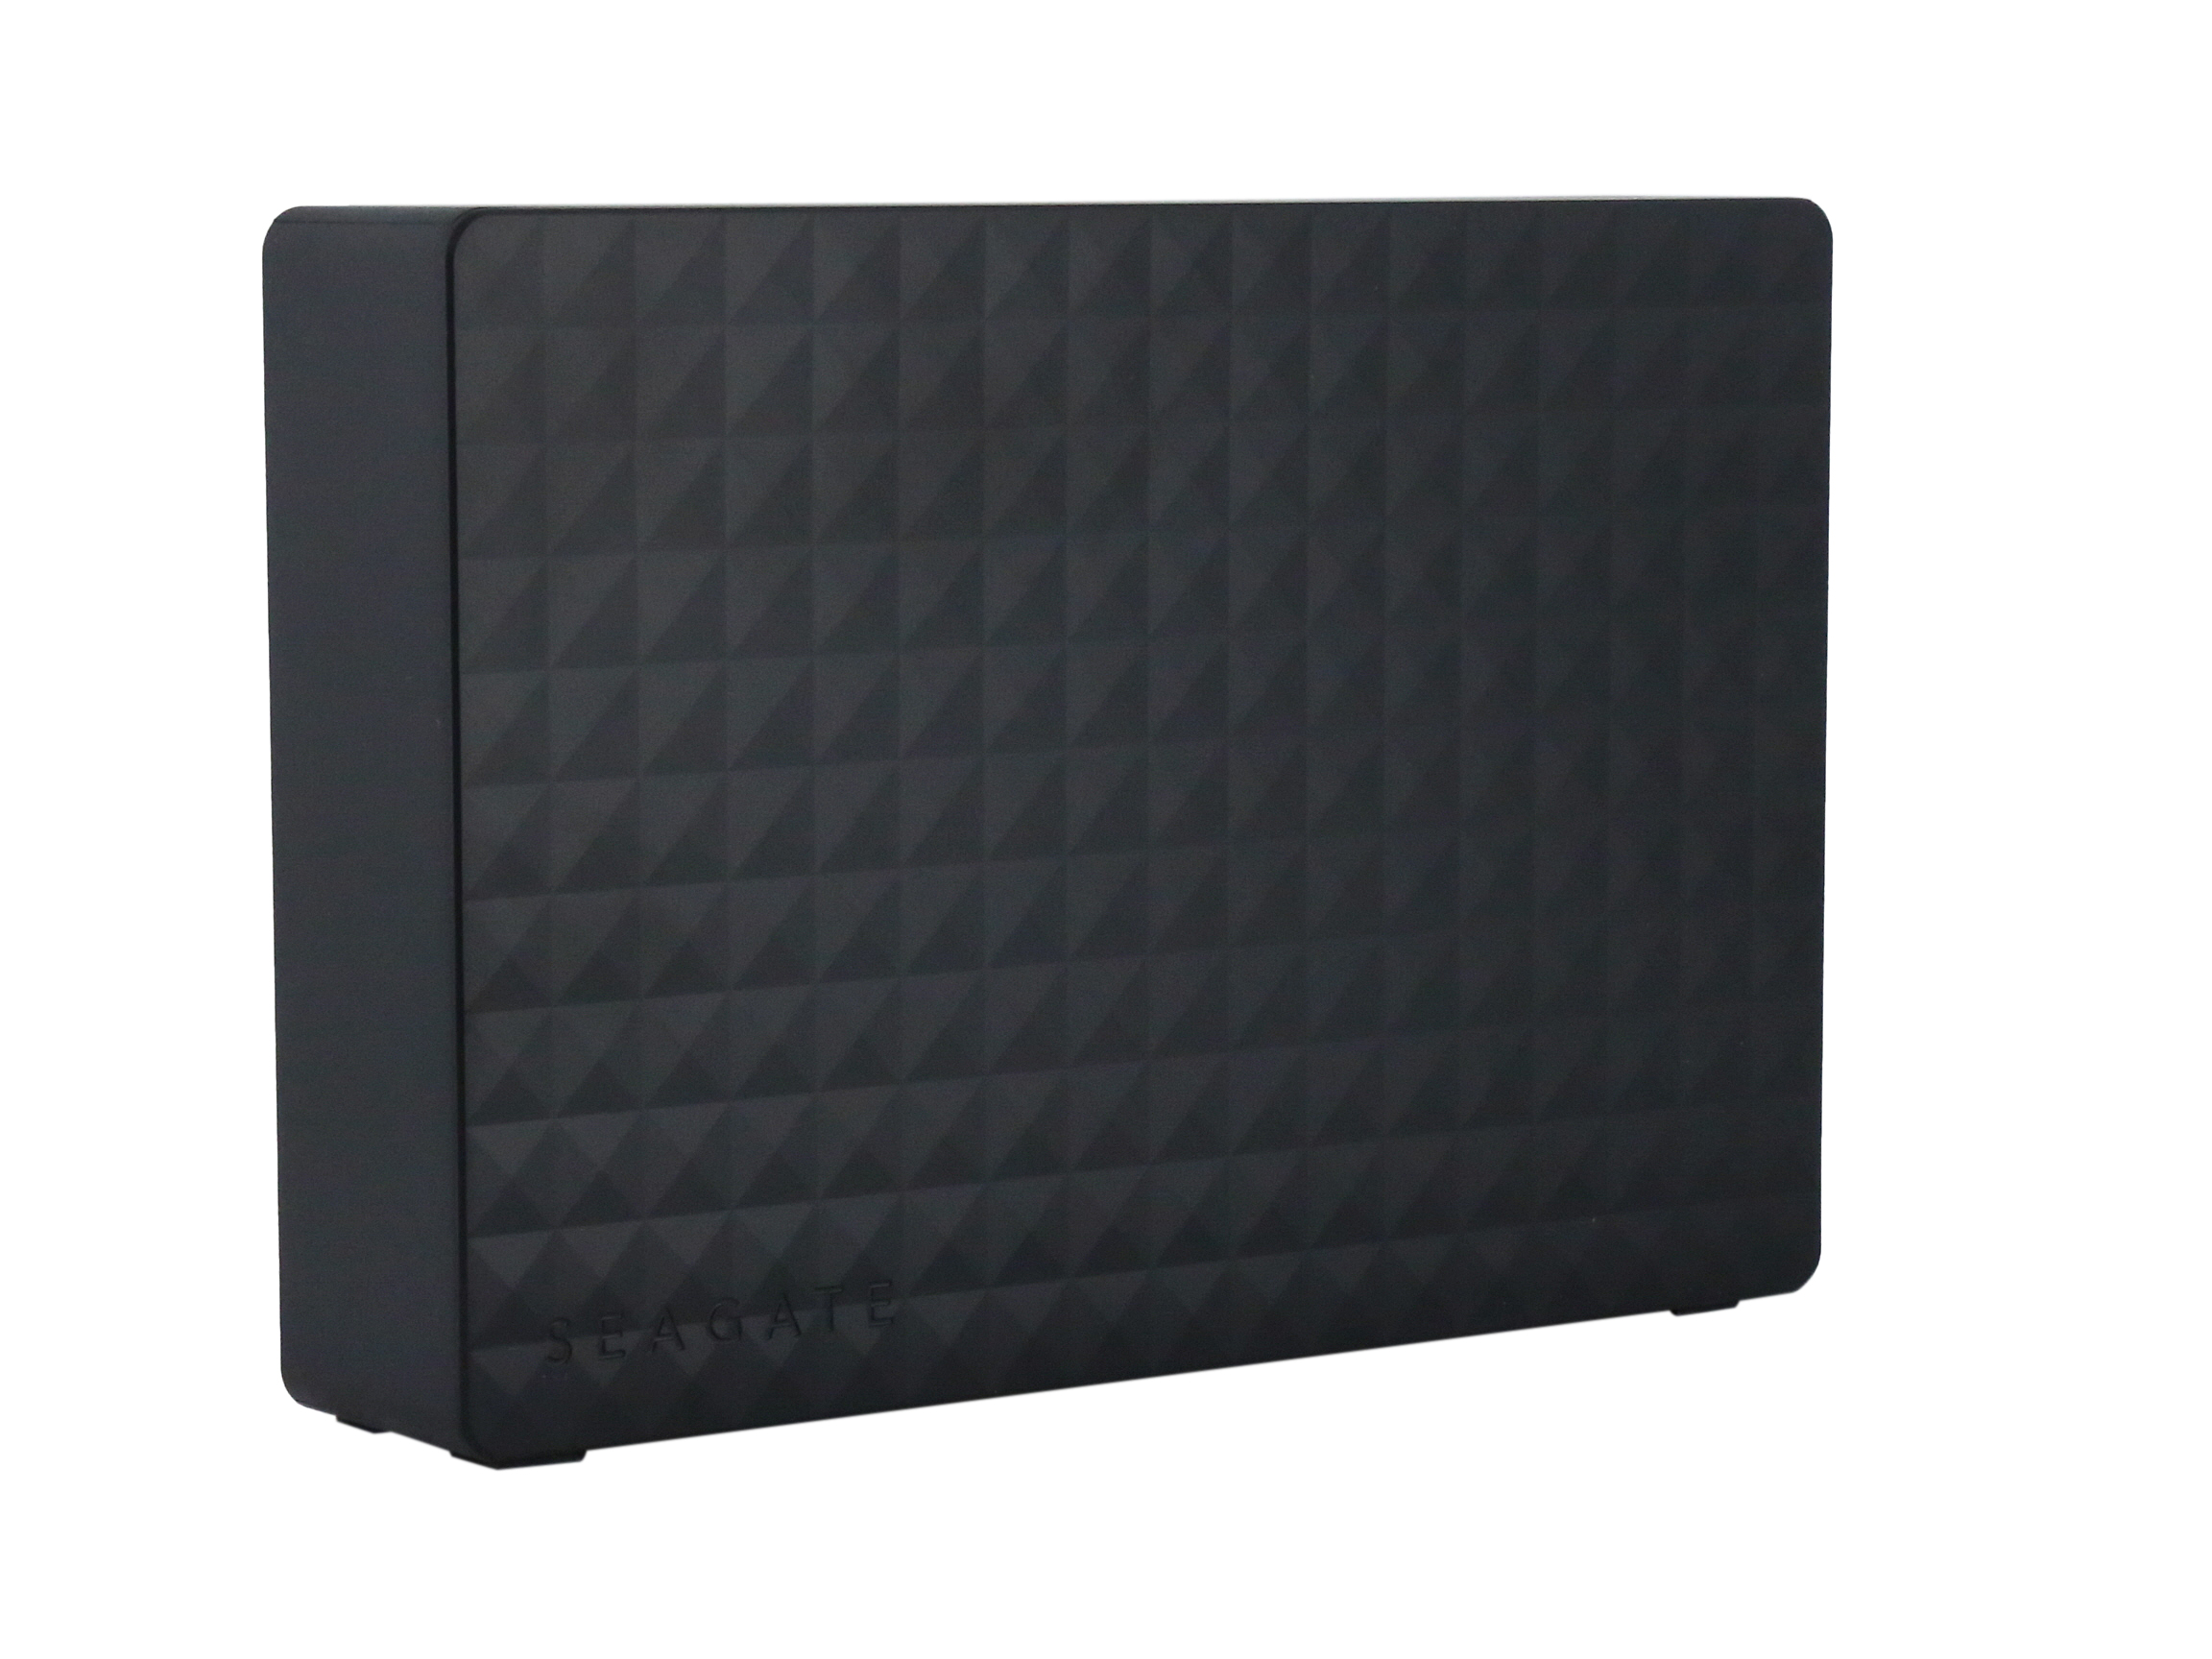 Seagate Expansion 10TB Desktop External Hard Drive for PC Windows PS4 Xbox USB 2.0 & 3.0 STEB10000400 - Black